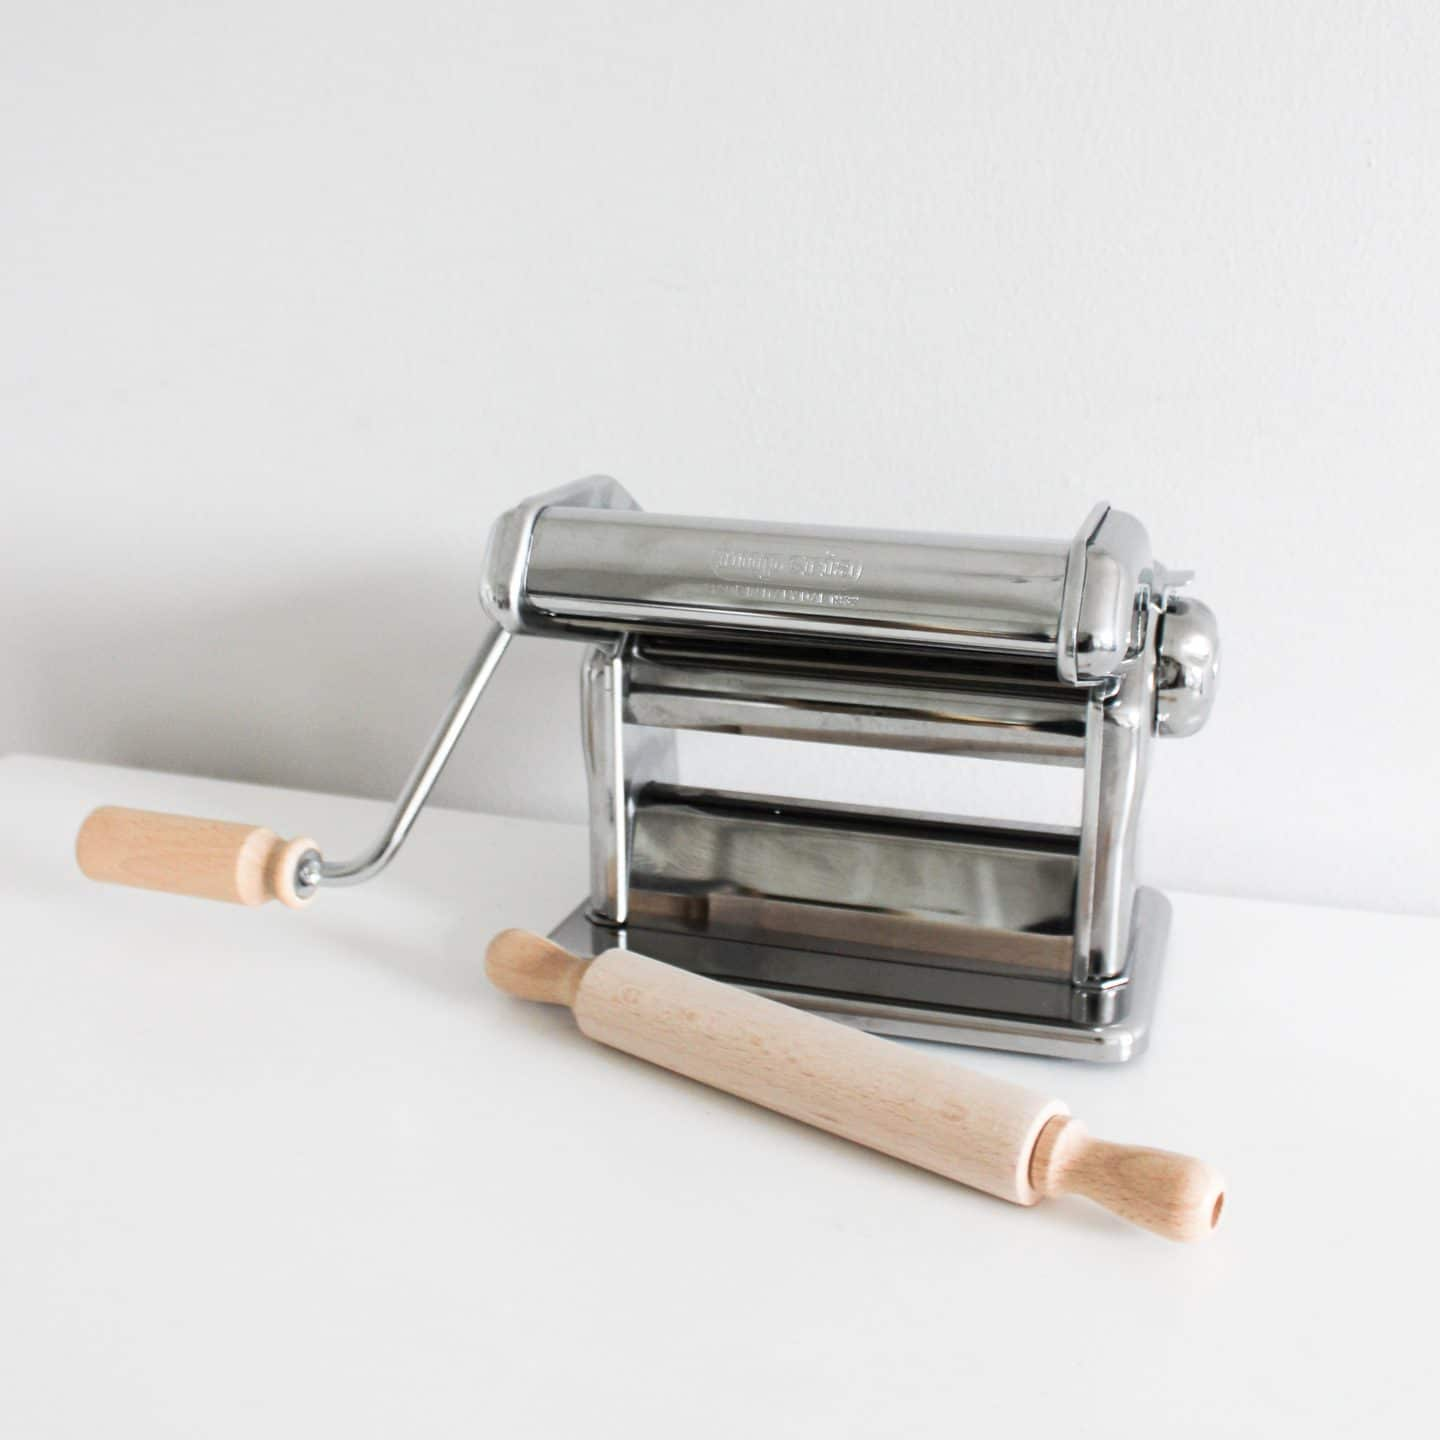 Imperia Classic Pasta Machine